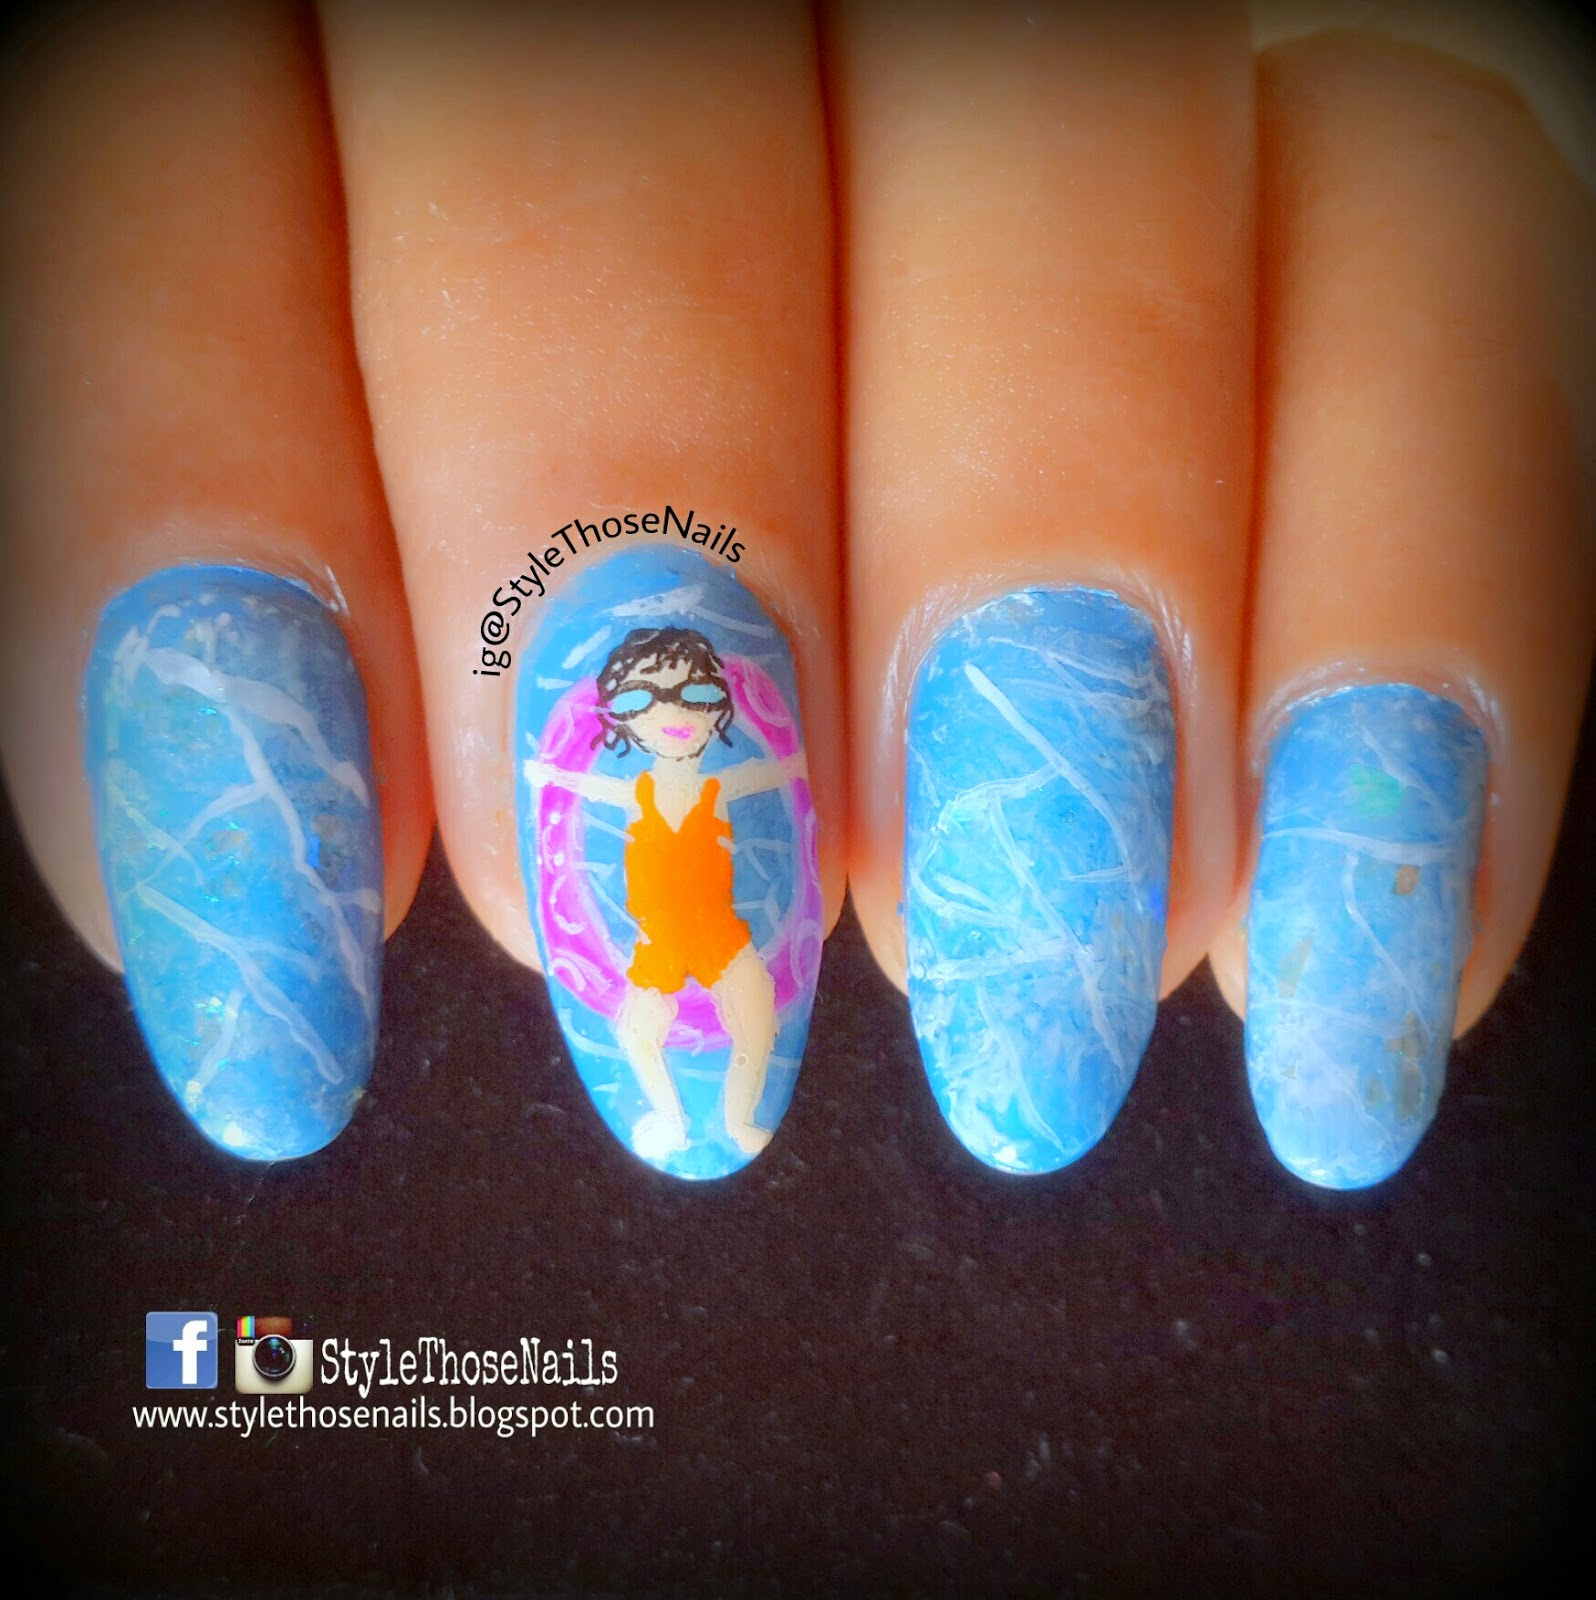 Style those nails swimming pool nails golden rose paris nail so what you think of this nailart and nail lacquer isnt it fun i hope you are also enjoying summer swimming is great way to beat the heat but sad i prinsesfo Choice Image